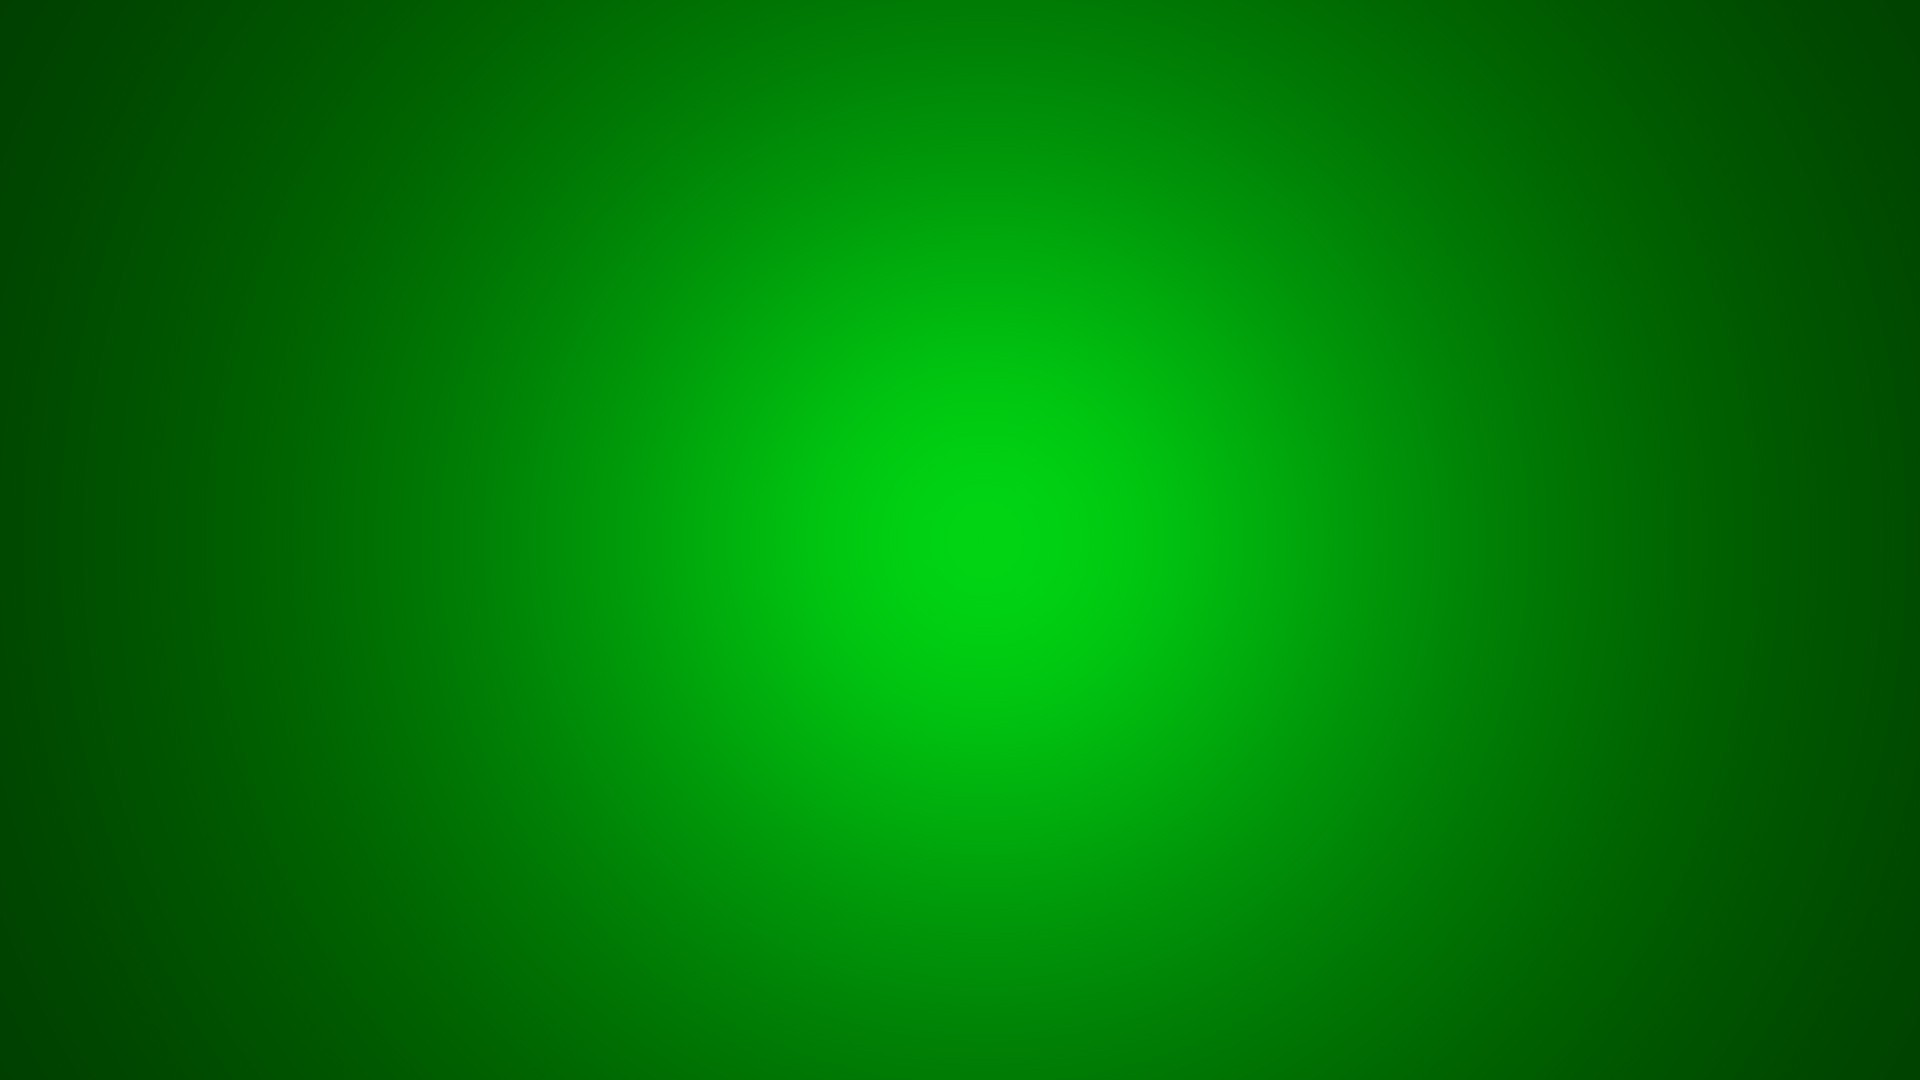 Green Wallpapers High Quality | Download Free